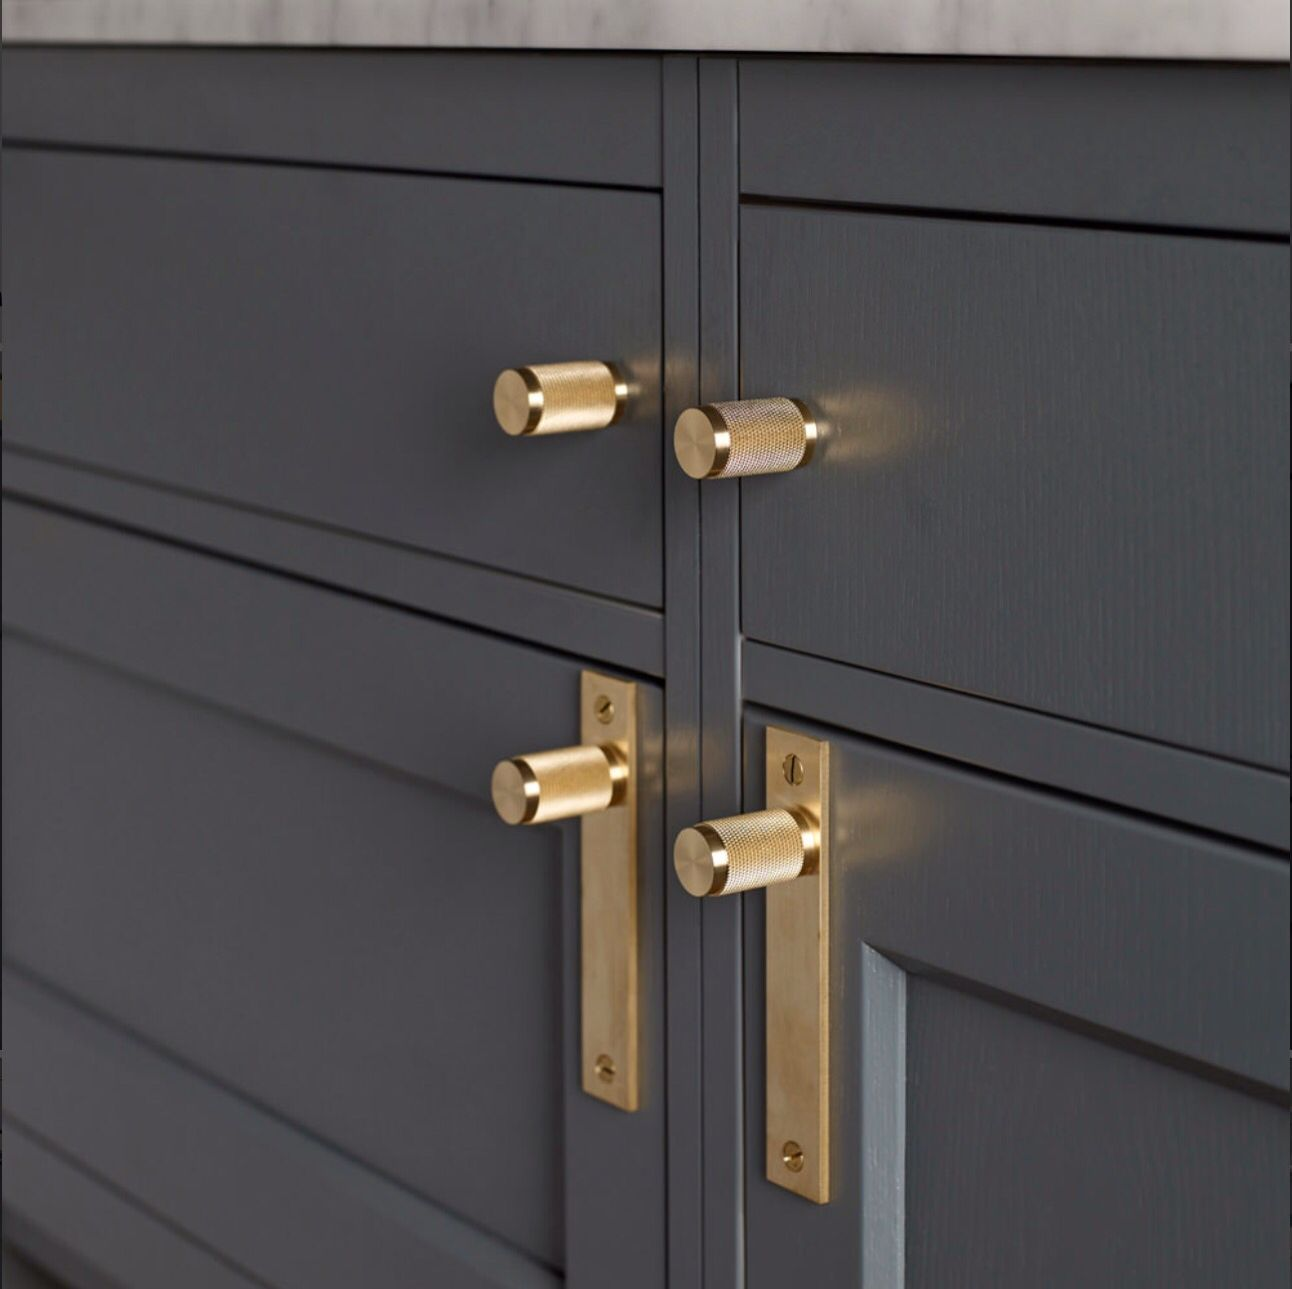 buster and punch hardware | Handles + Hardware | Pinterest